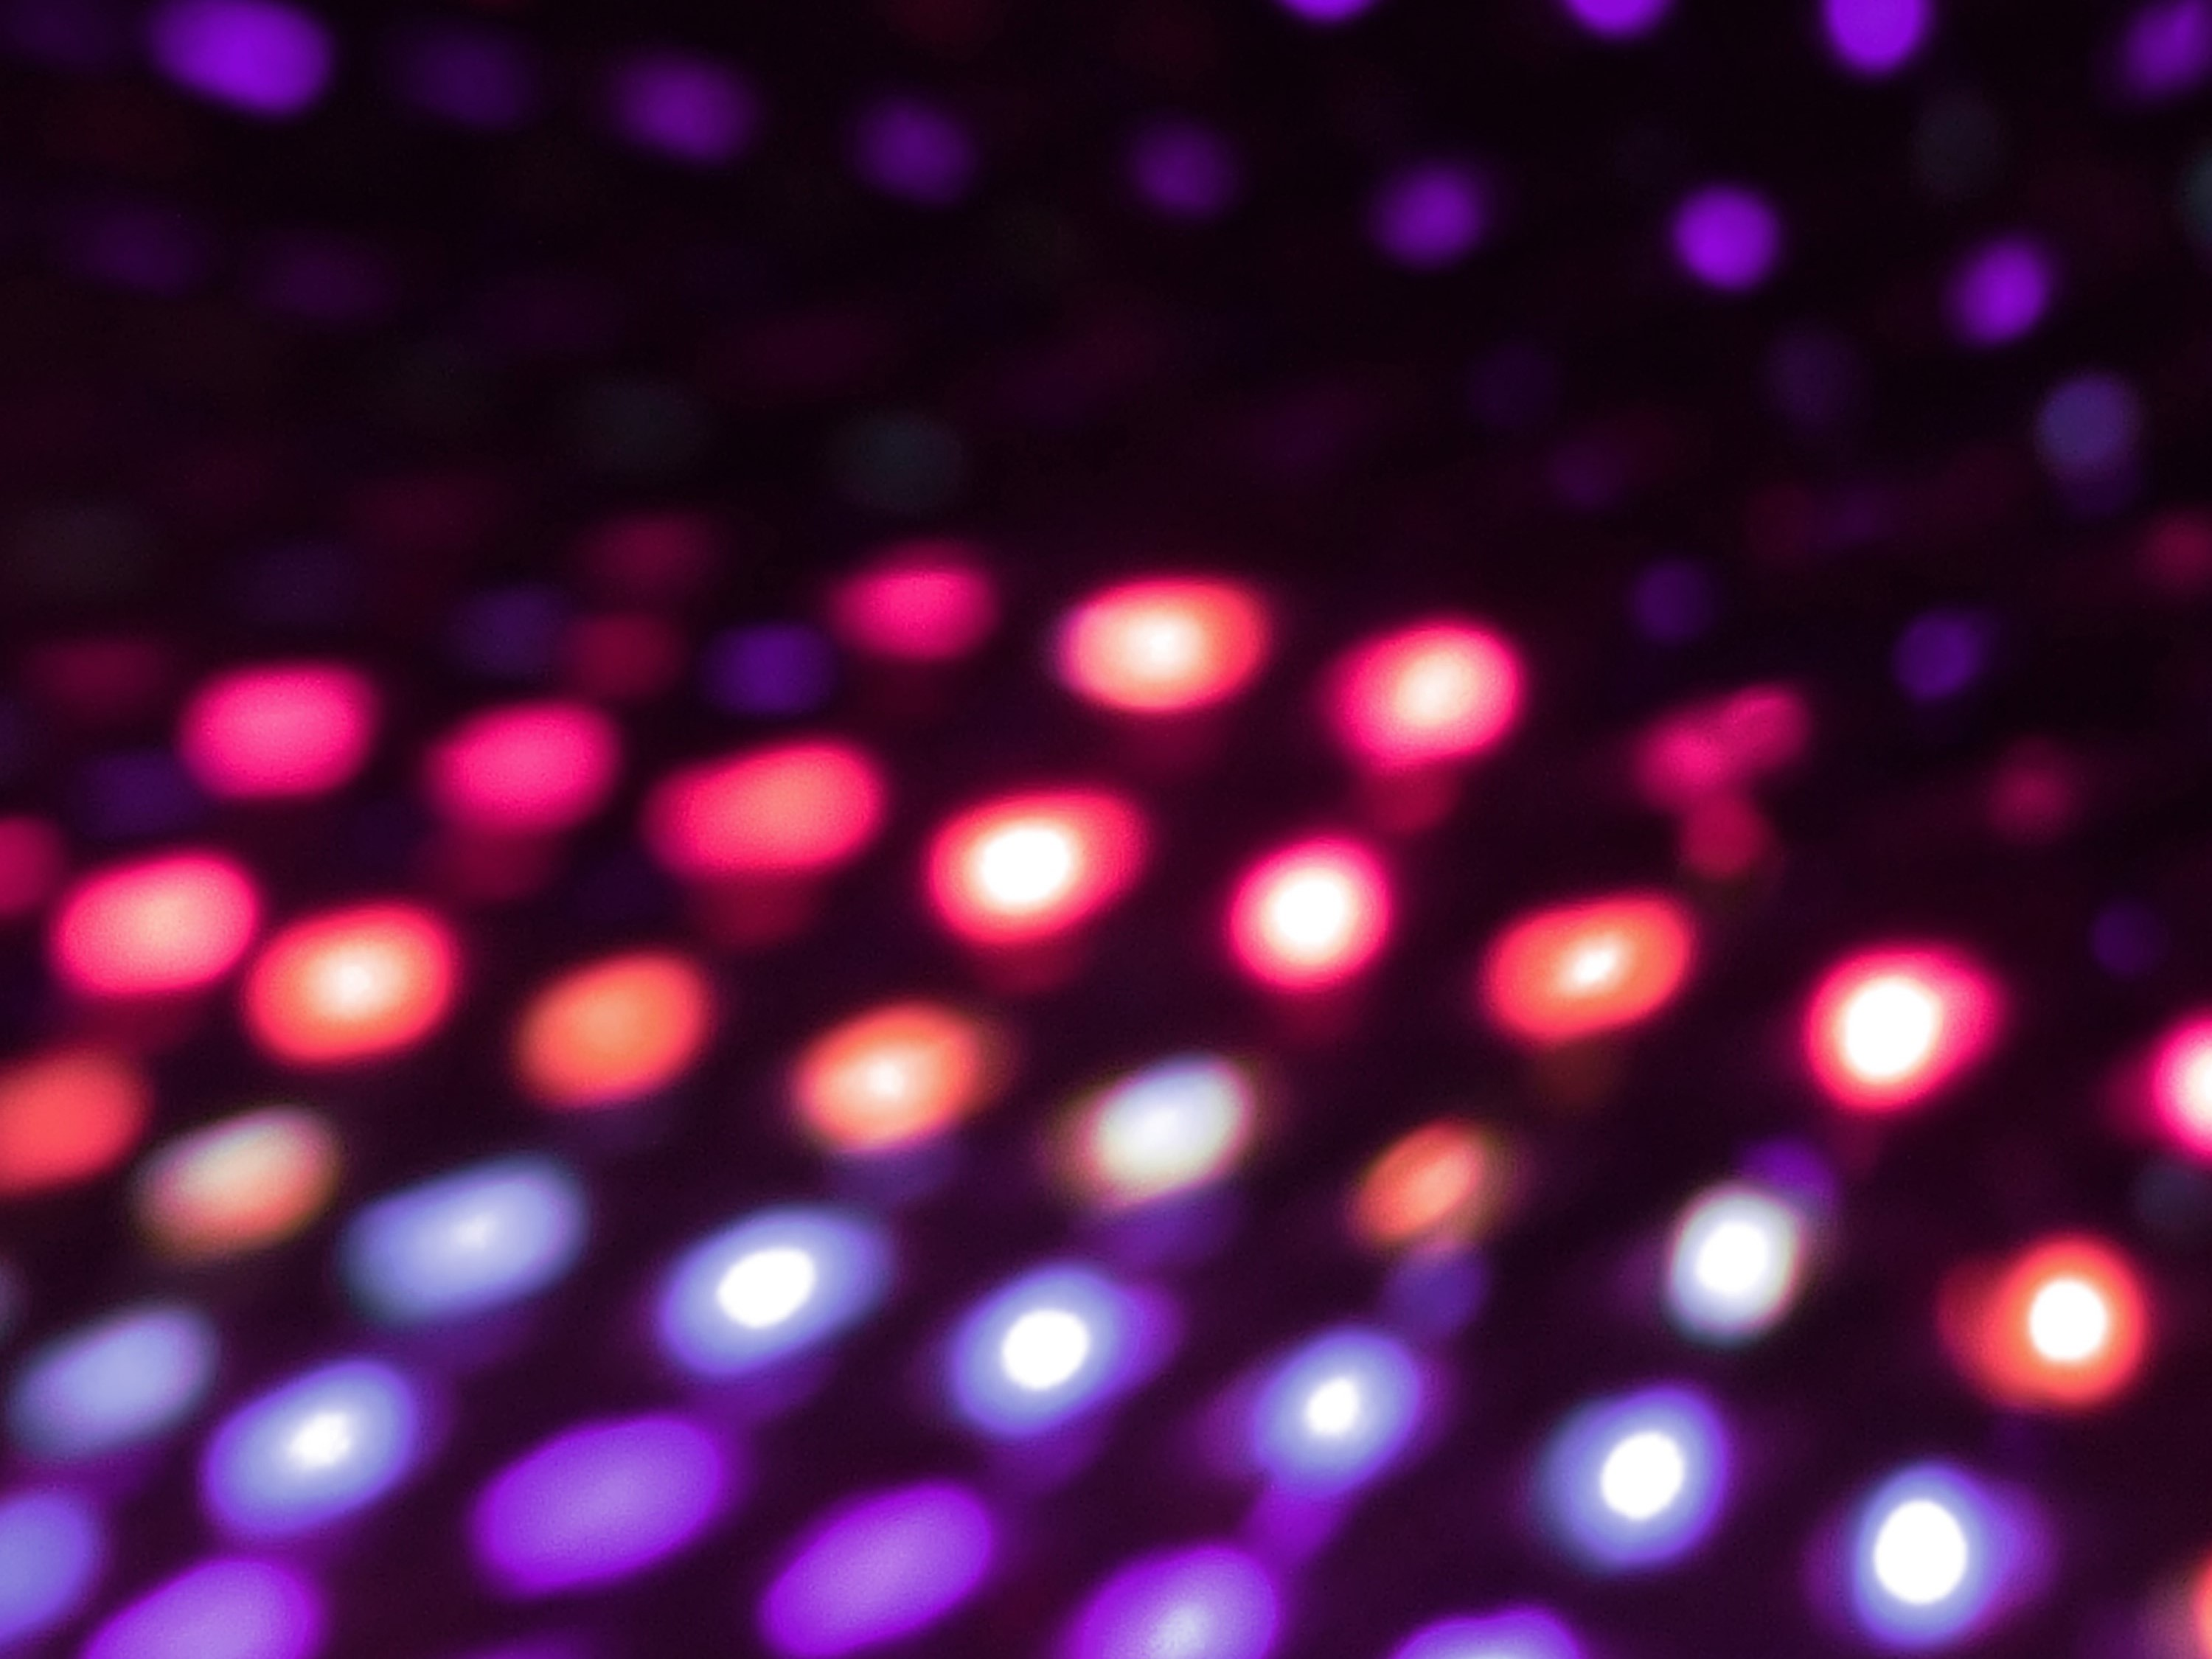 a colorful red and purple matrix of lights on black